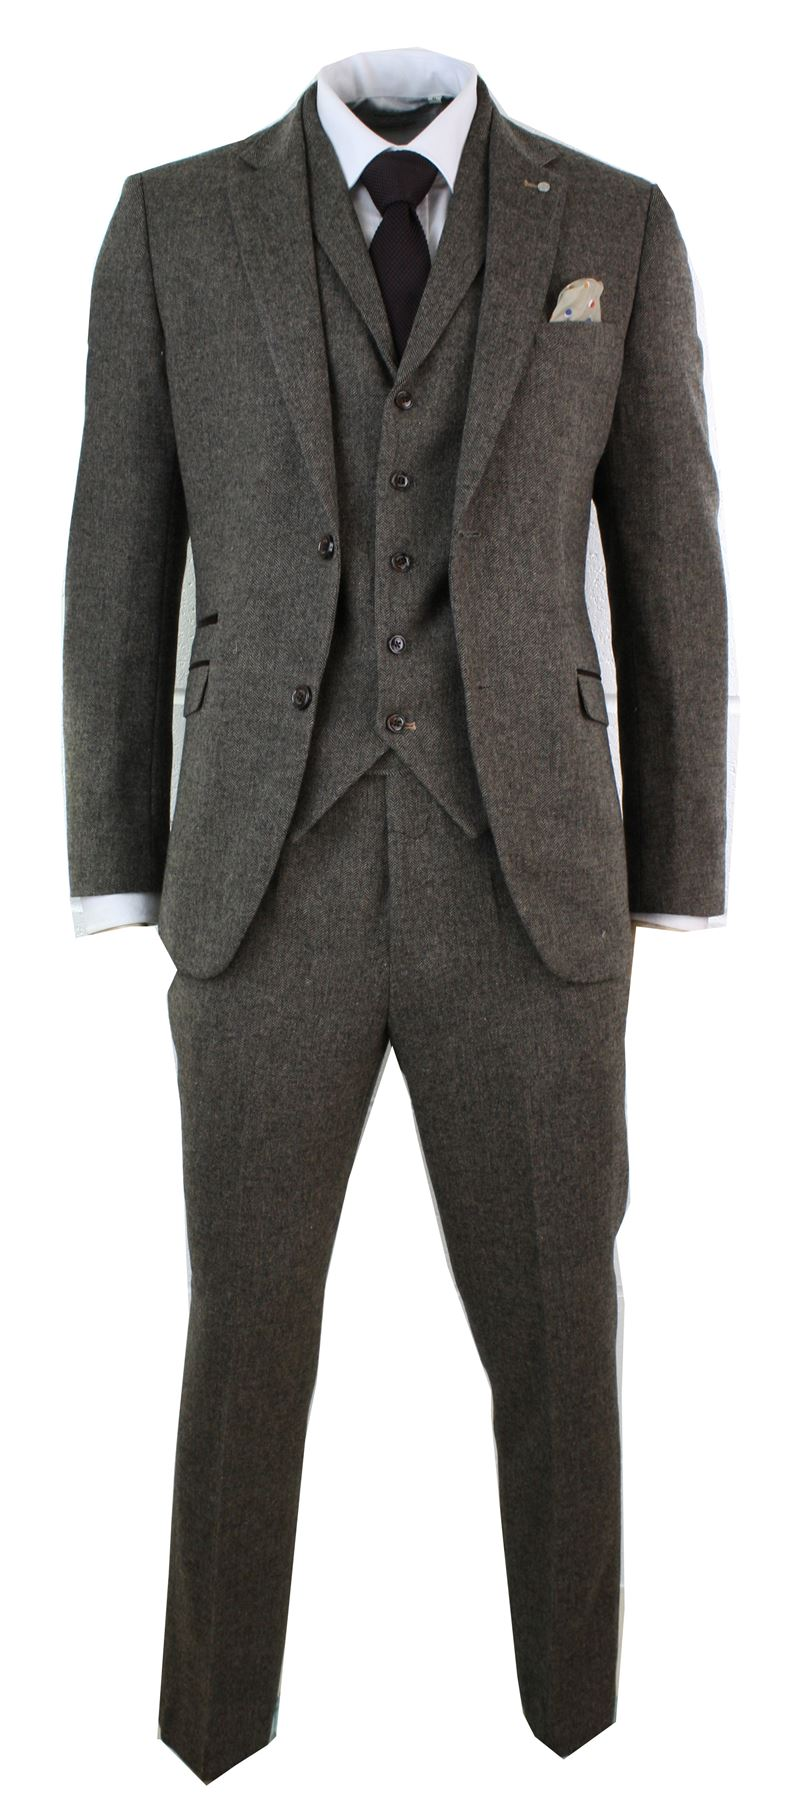 The classic cut suit is back in style, and there's absolutely nothing like the lines a man gets when wearing a good suit. If you really want to take it a step further and add that perfect touch of style and class, you can't beat a wool suit.